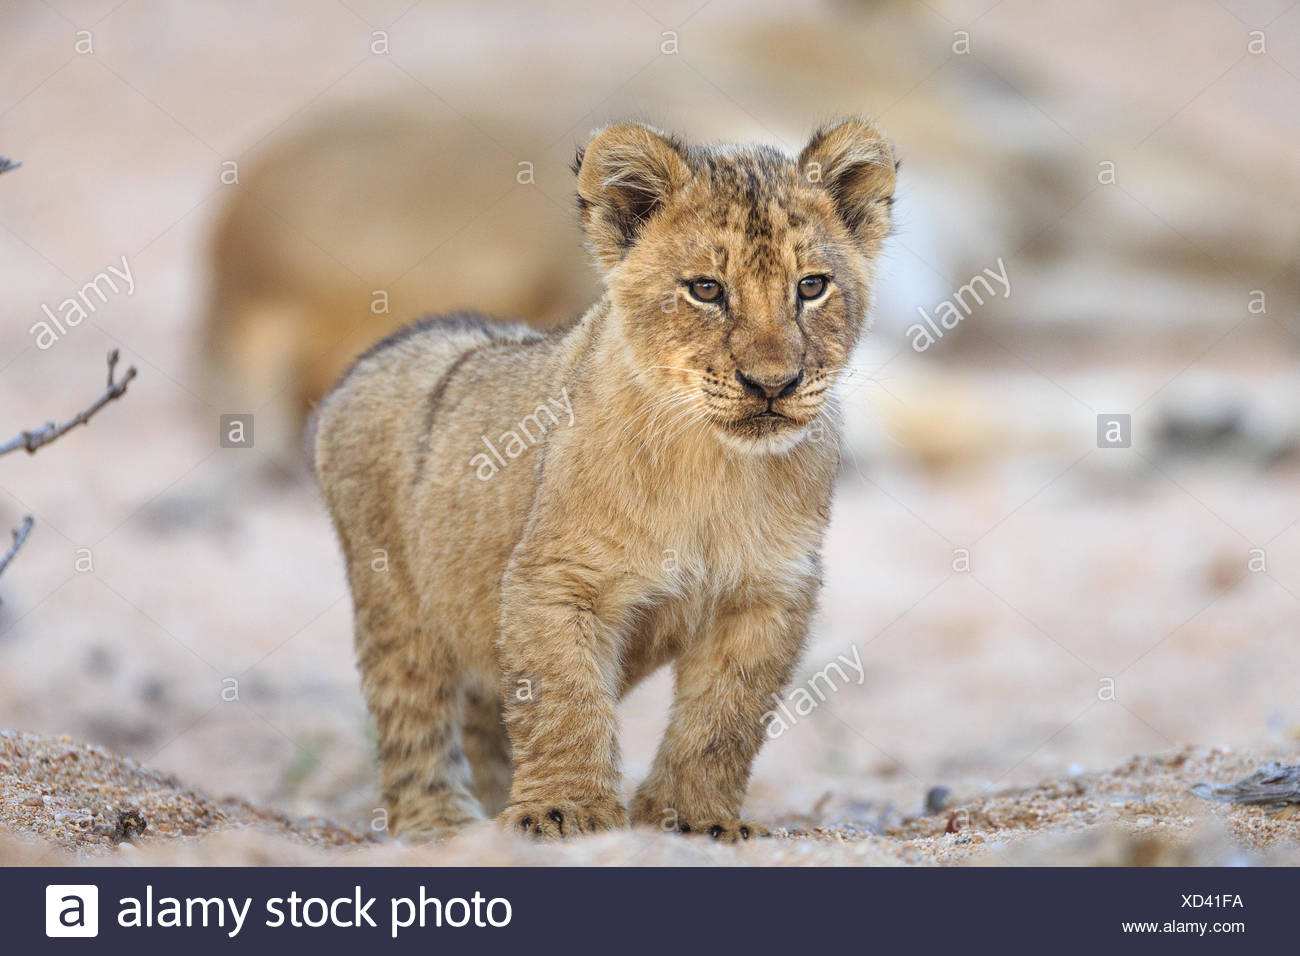 Lion cub, Panthera leo, standing in a sandy dry riverbed. - Stock Image